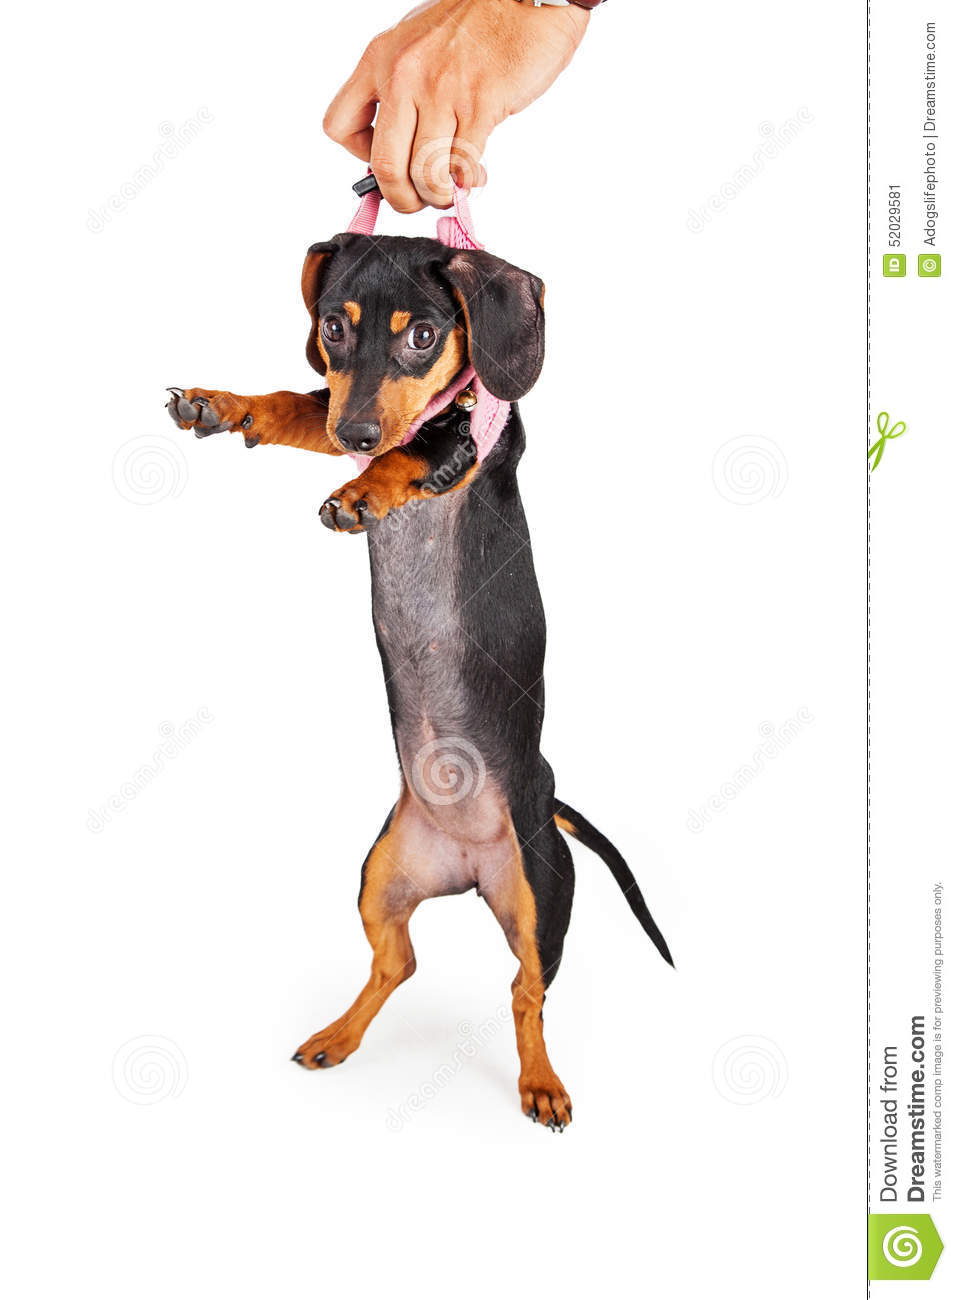 Dog Owner Picking Up Puppy By Harness Stock Image Image Of Canine